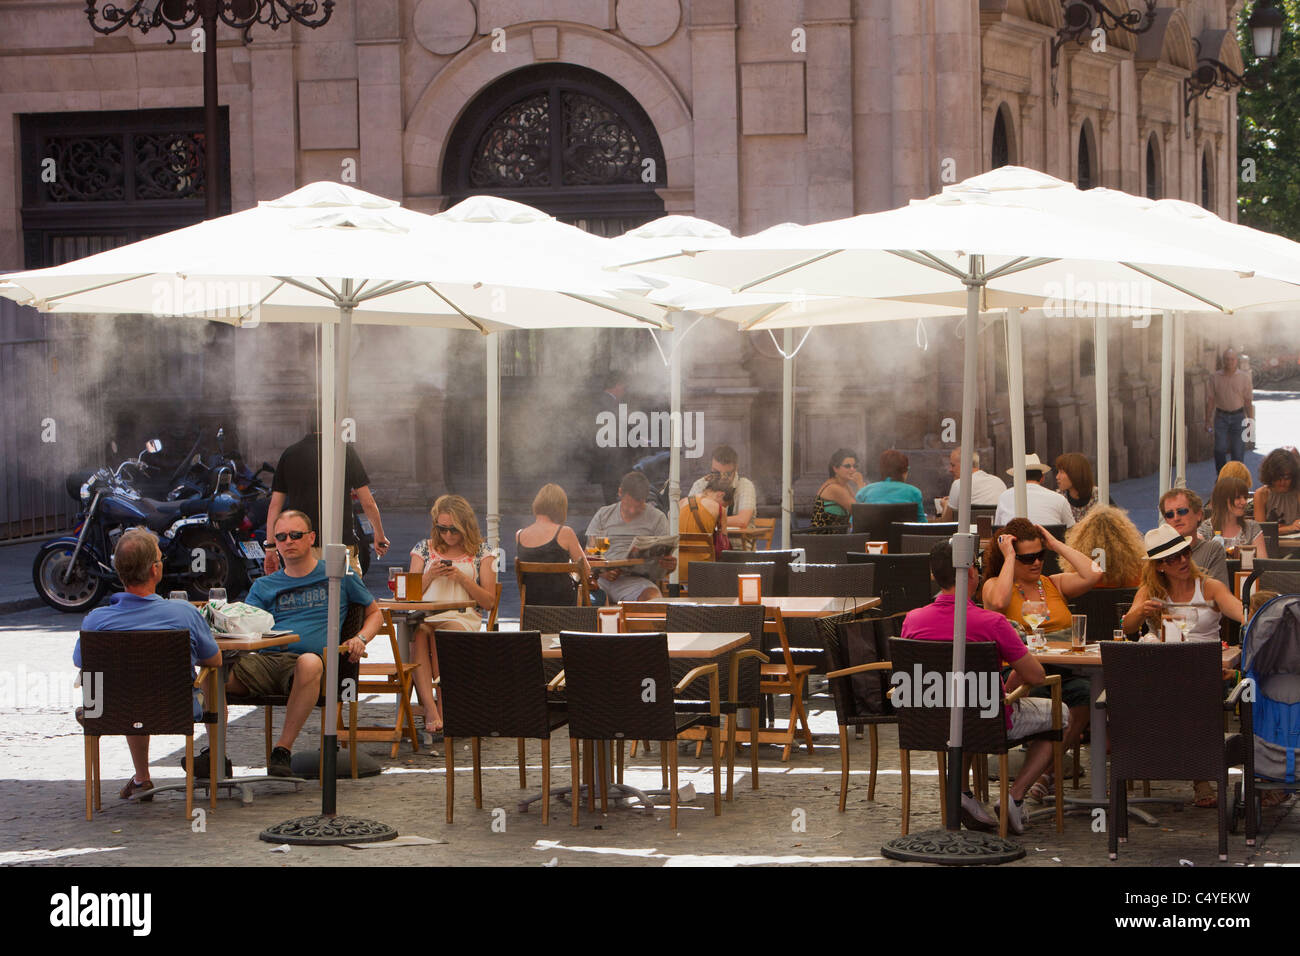 A pavement cafe is using mist sprayers to try to cool customers down in Seville Spain. - Stock Image